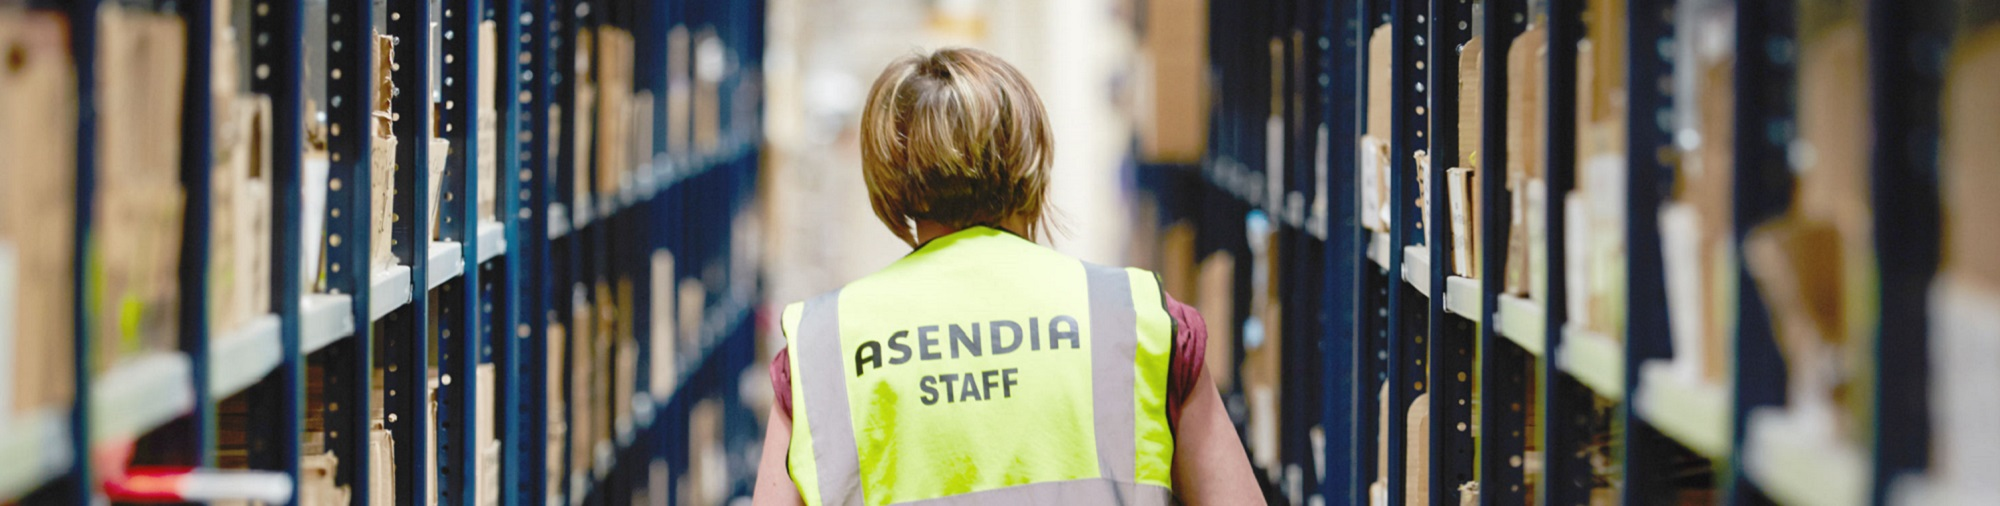 Asendia Careers header 500